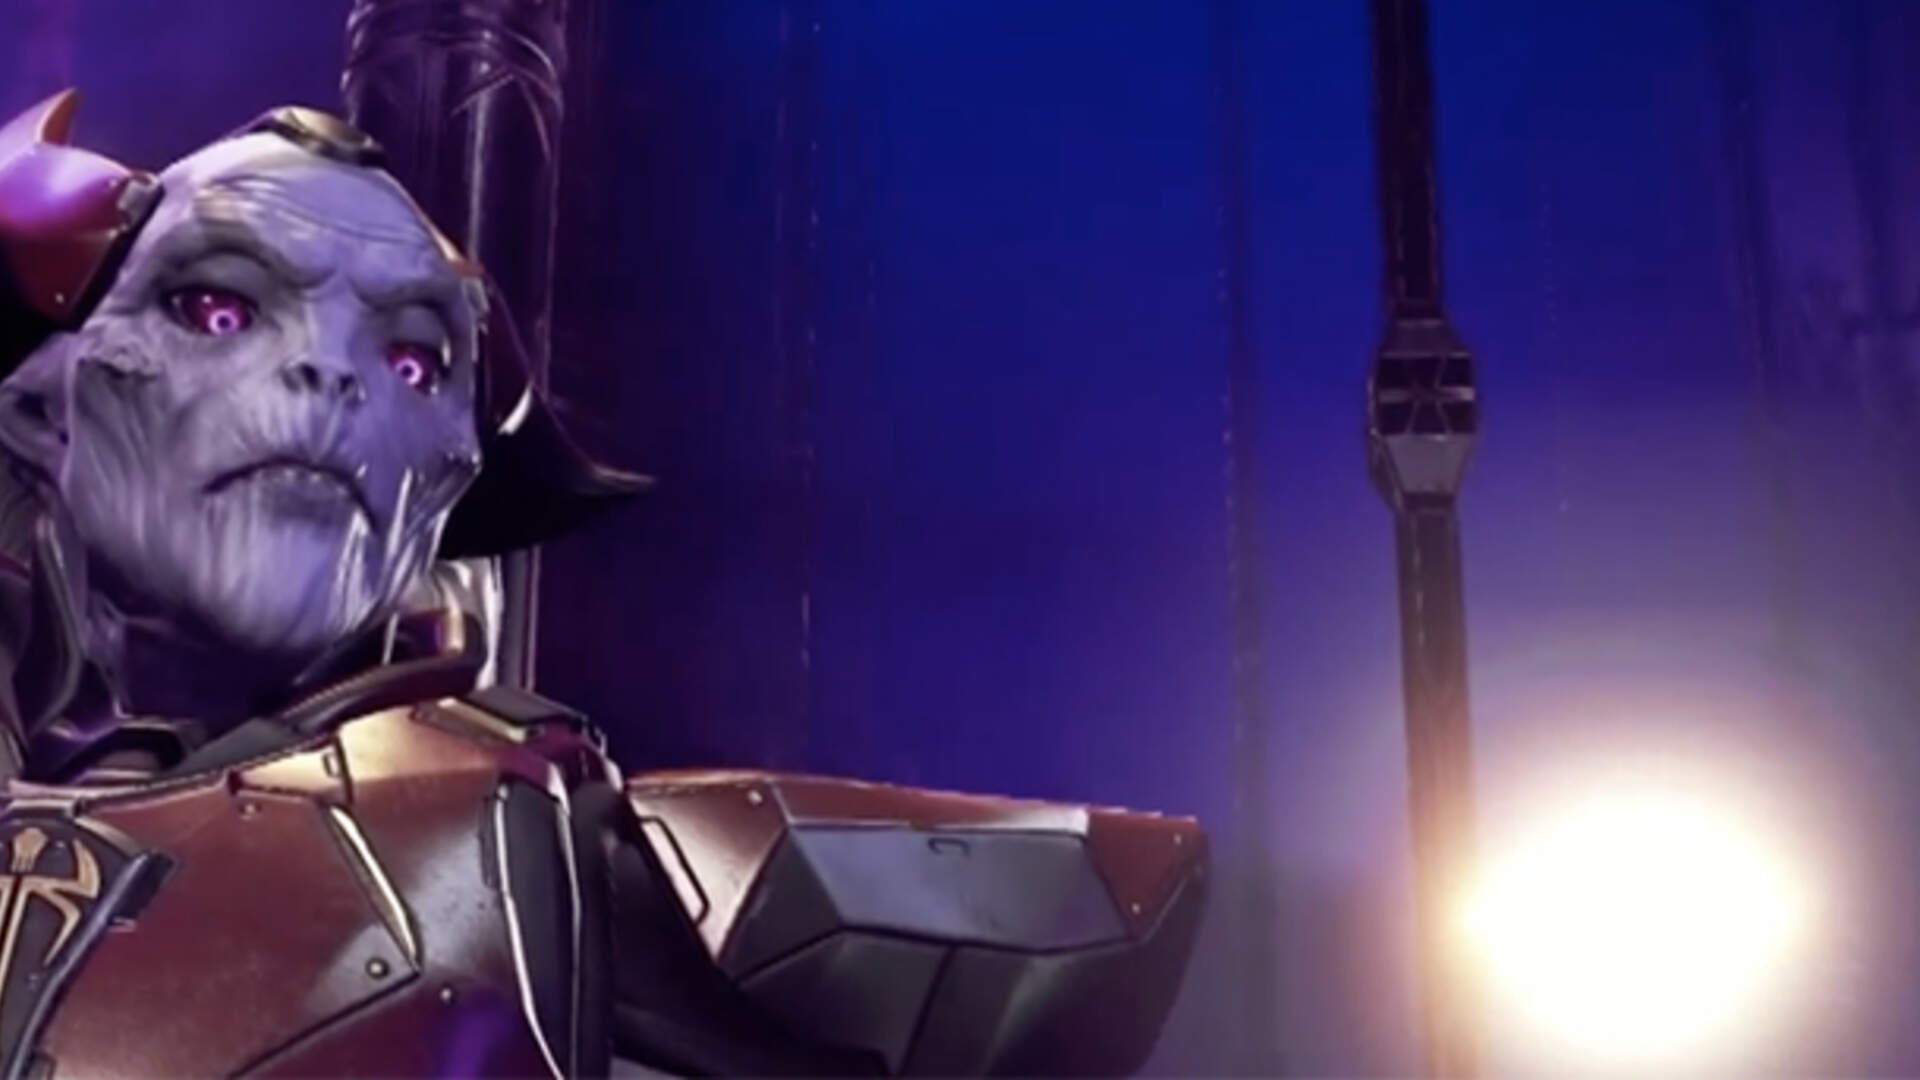 XCOM 2: War of the Chosen - Release Date, Price, Characters, Enemies, Abilities - Everything We Know